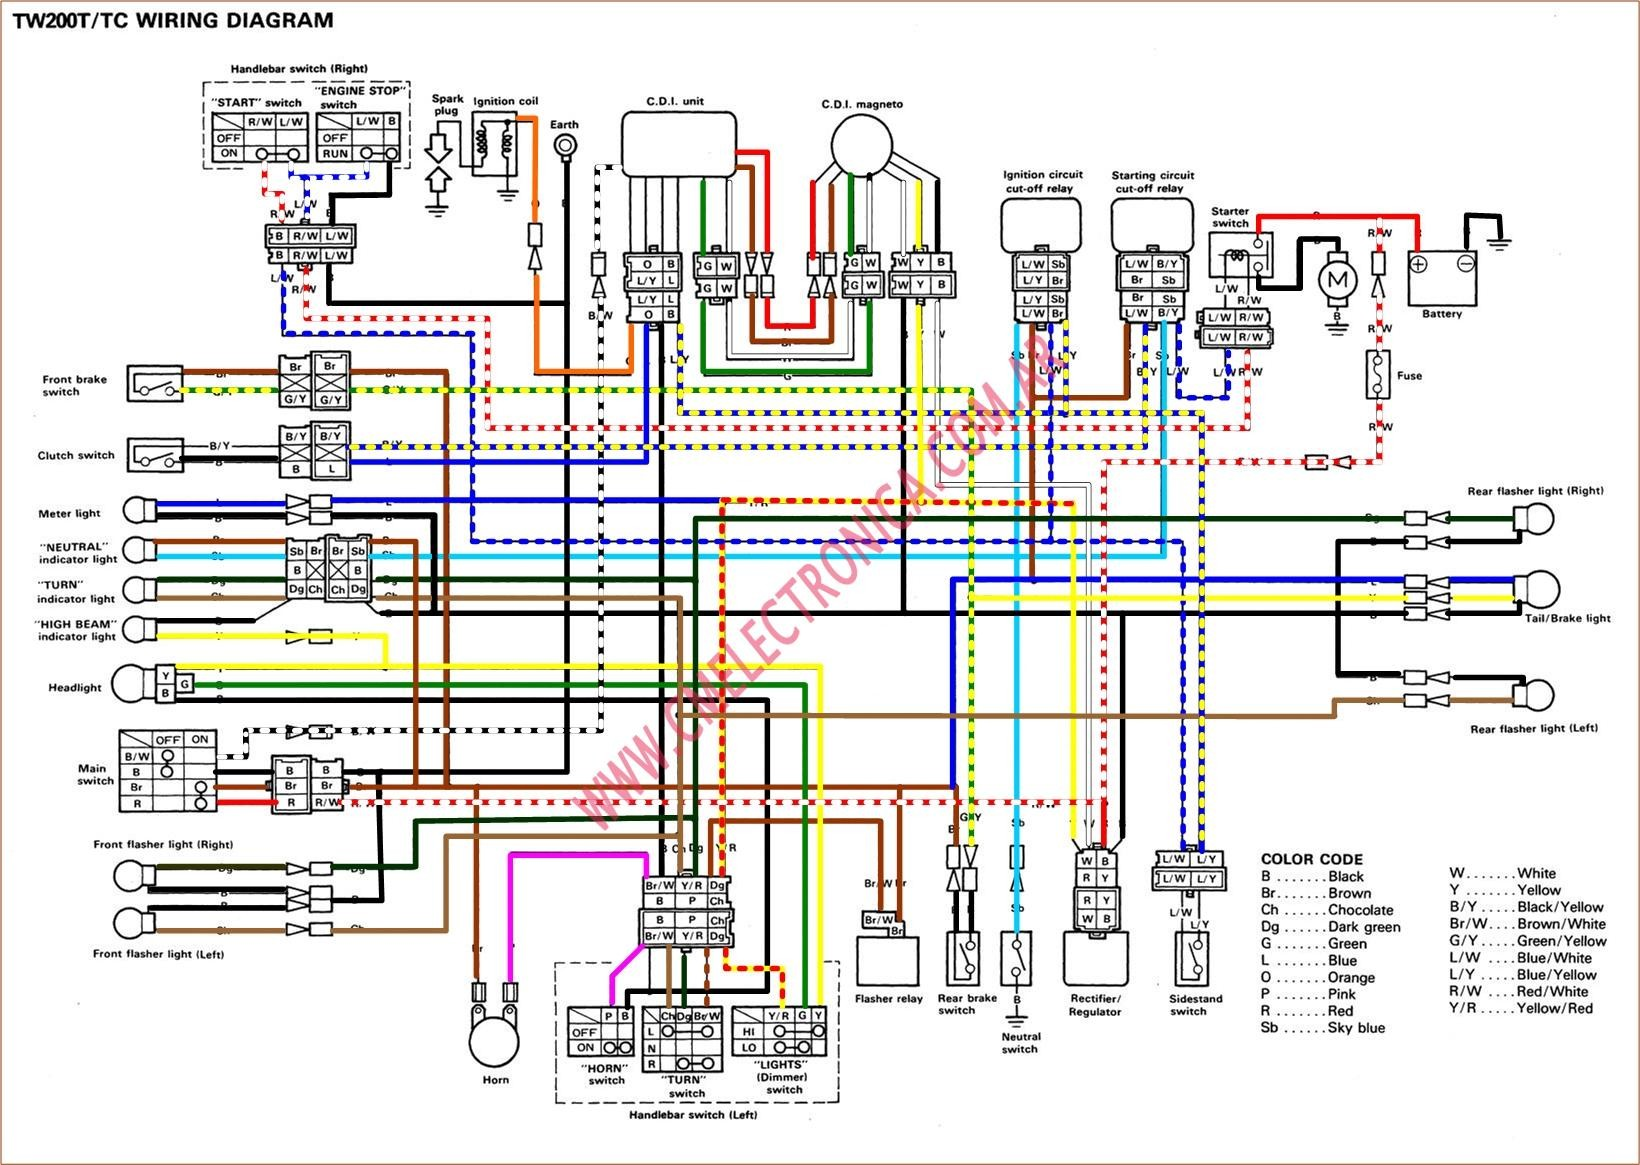 manuals] 1996 yamaha kodiak carburetor diagram wiring schematic full  version hd quality wiring schematic -  manualguidesnet.parcodeiprincipiricevimenti.it  parcodeiprincipiricevimenti.it